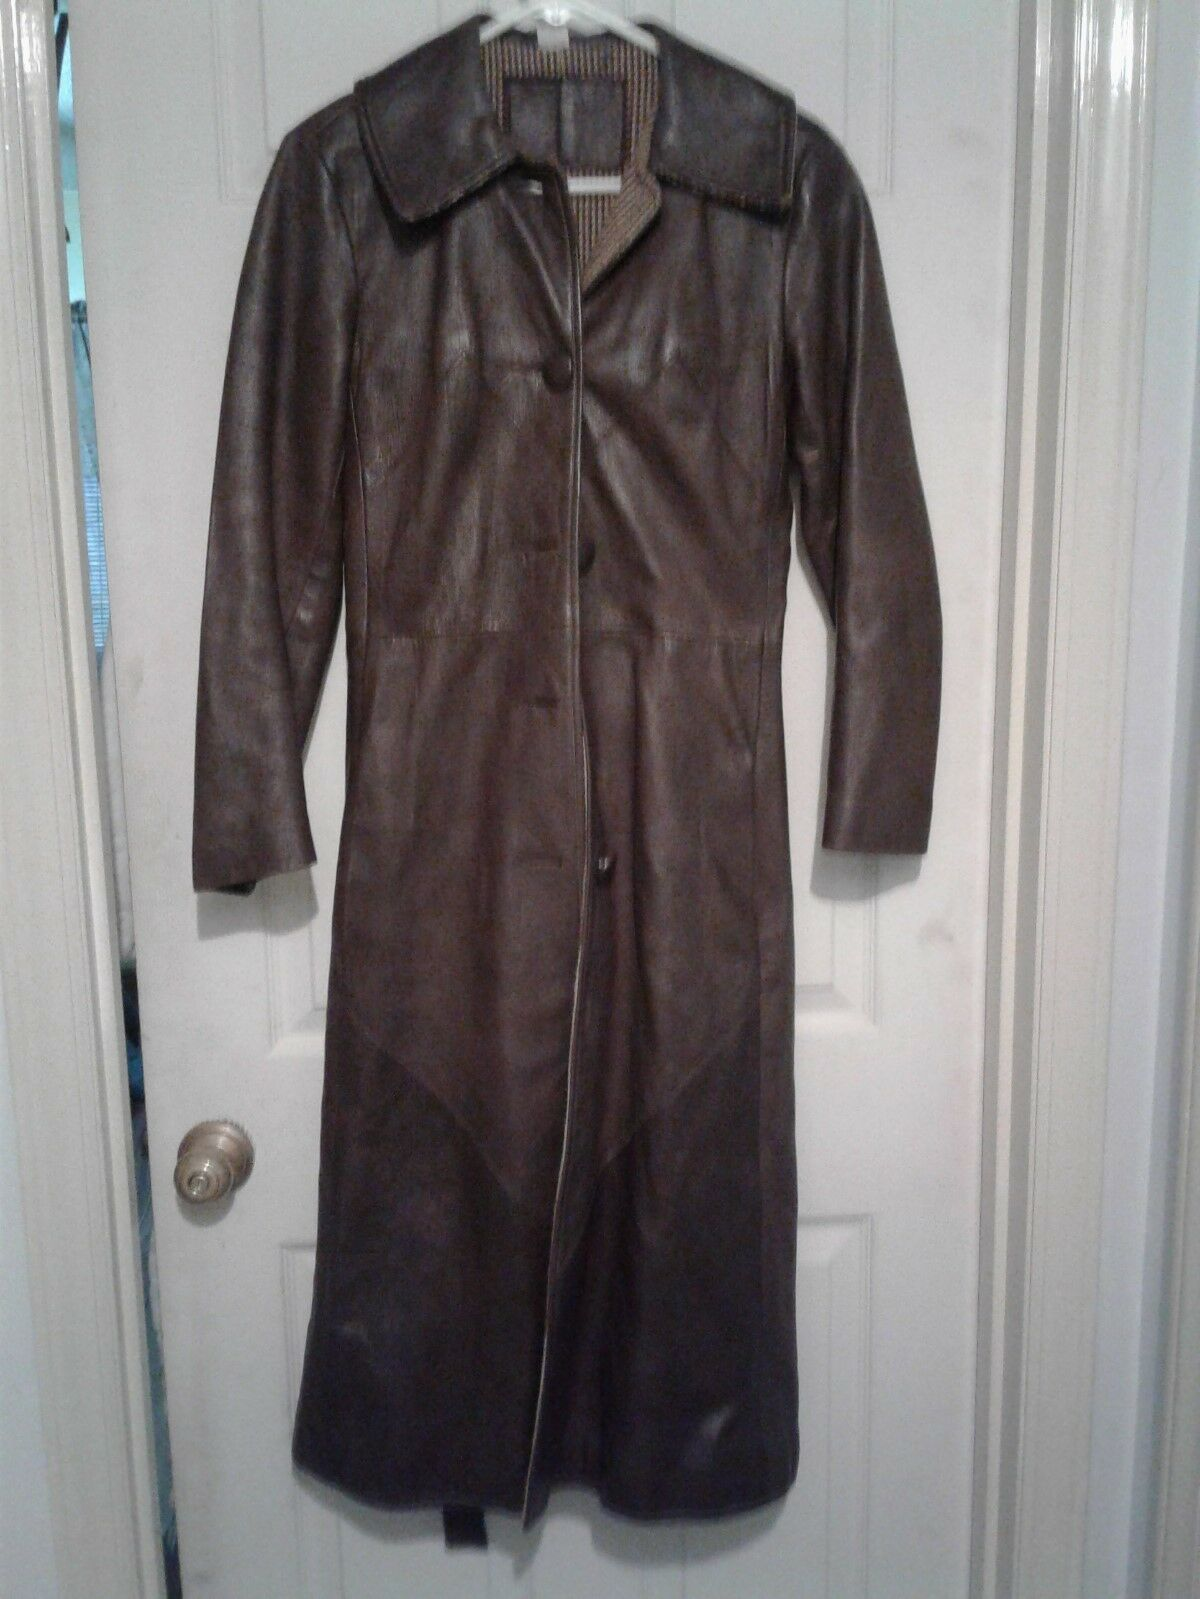 Equestrian Riding Coat,Vintage Leather,Brown,size small